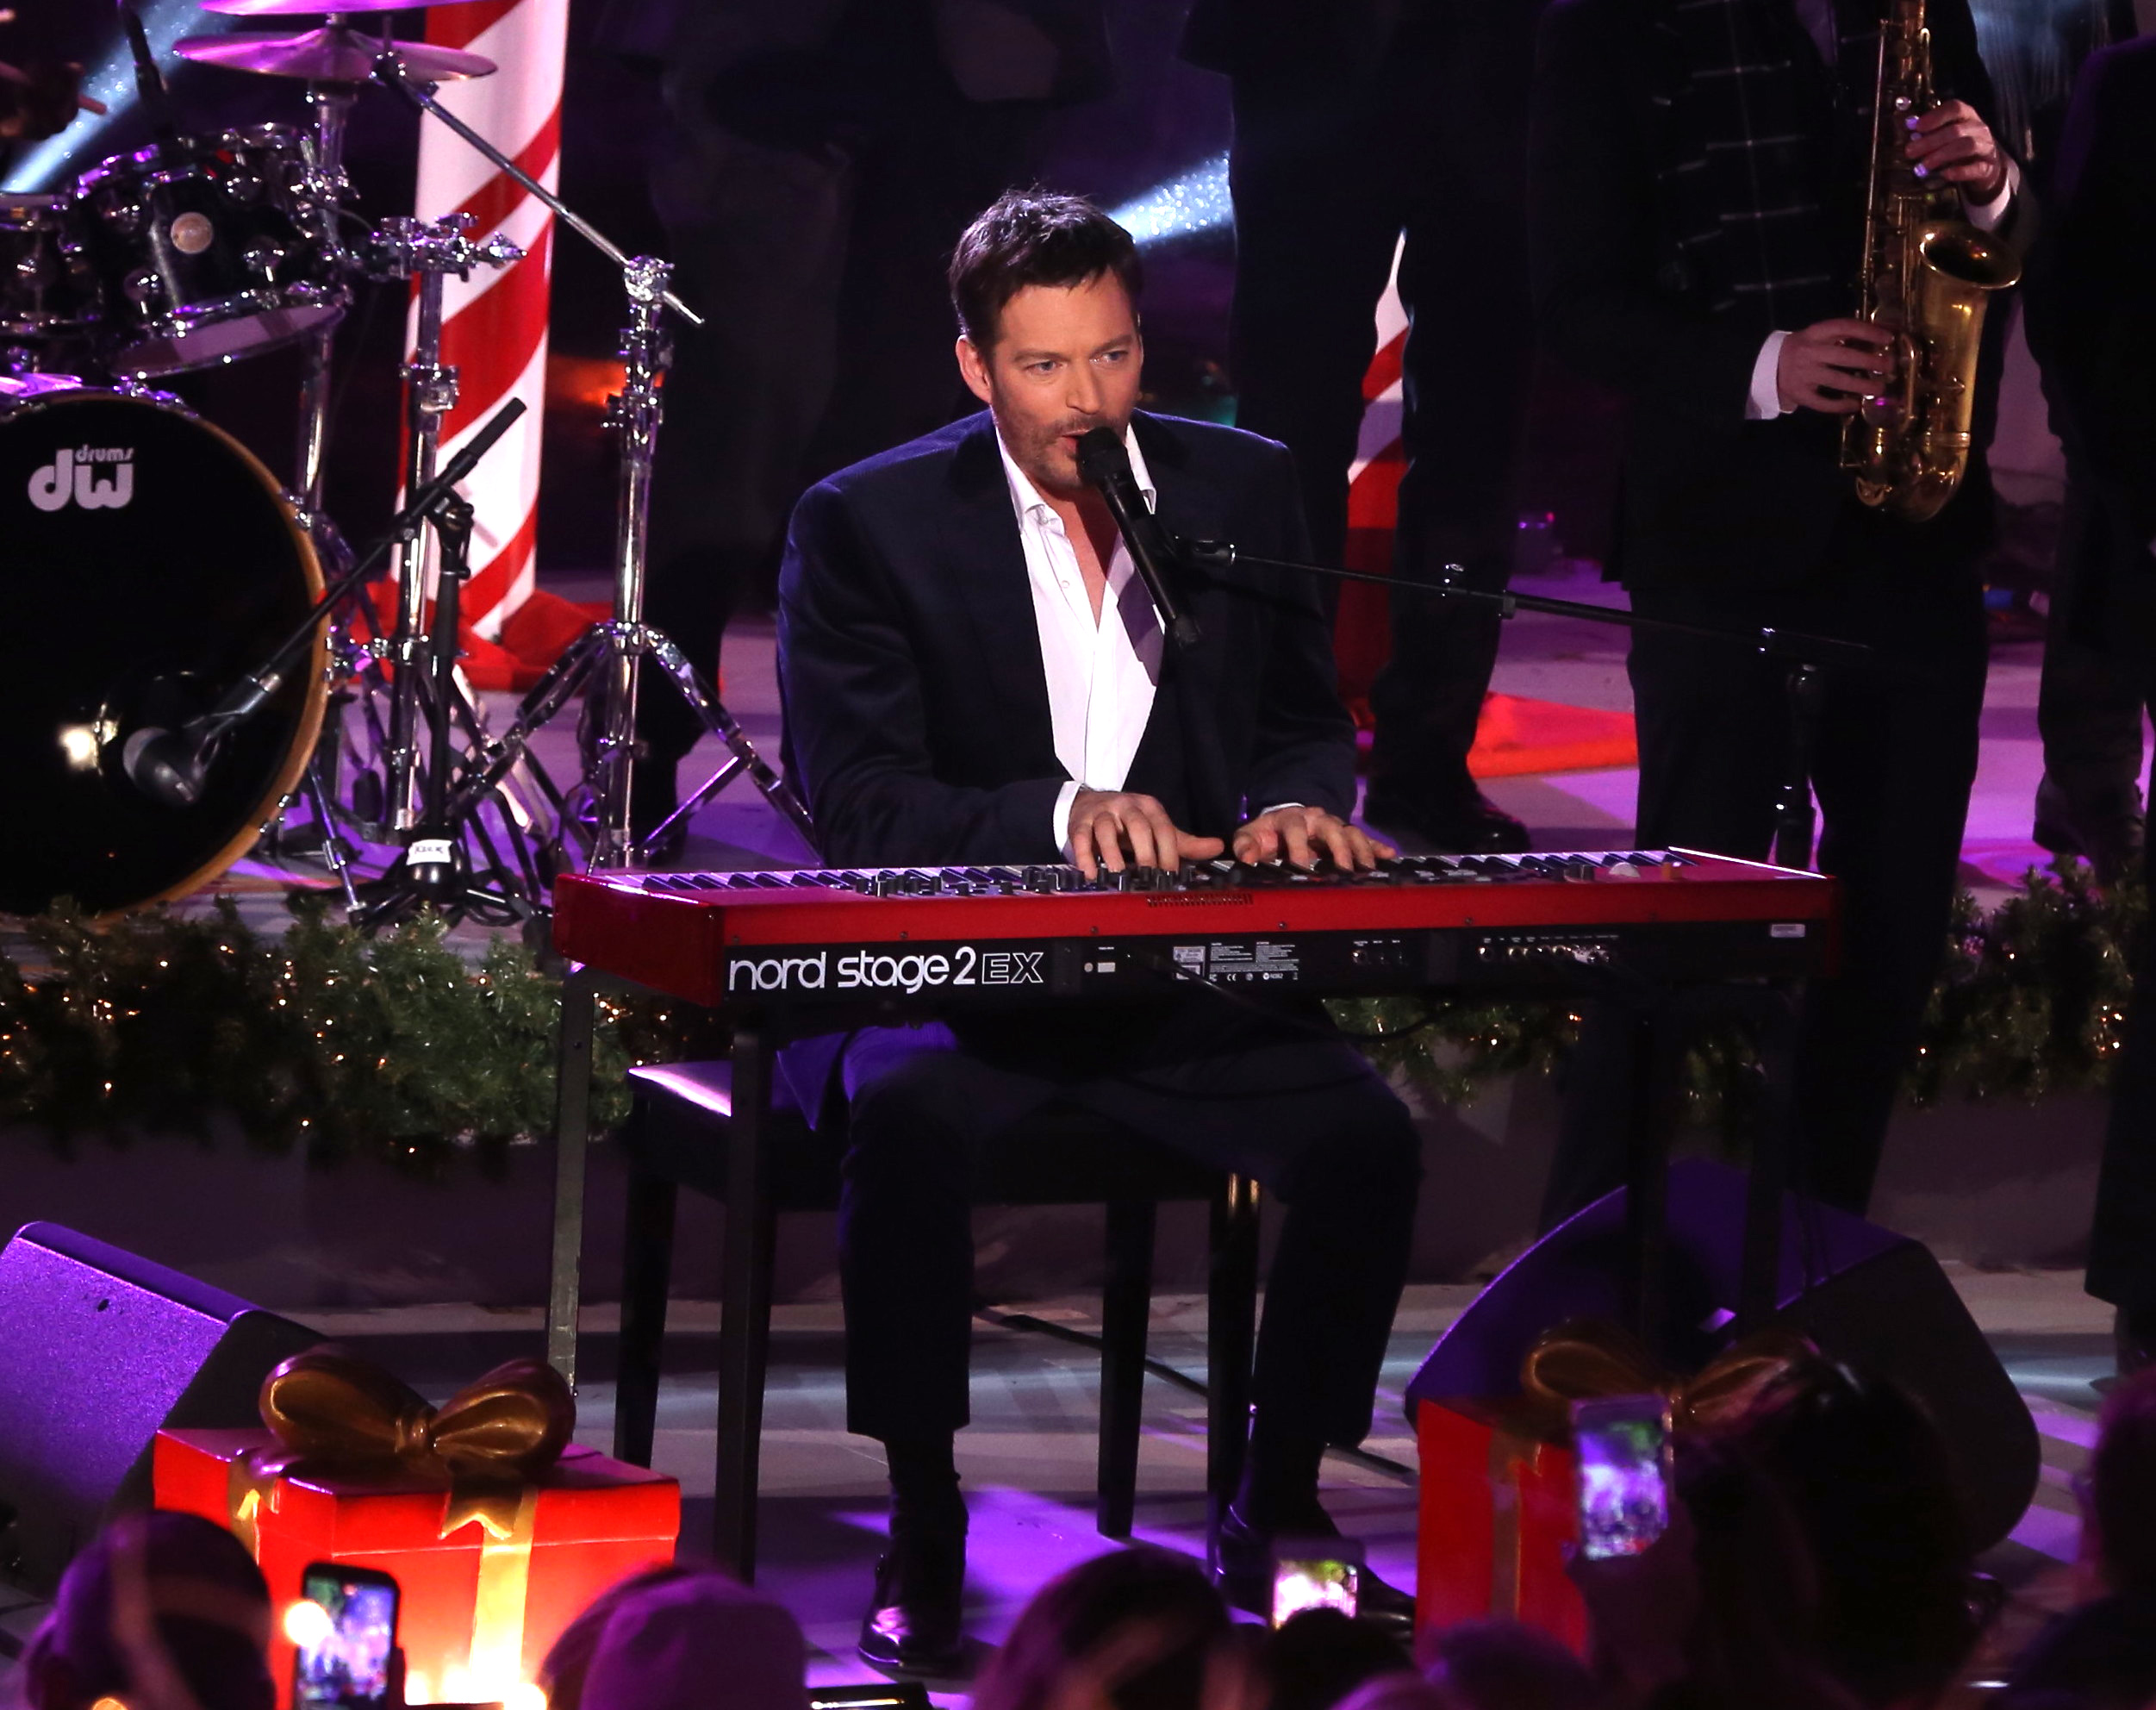 Harry Connick Jr. performs at the 85th Annual Rockefeller Center Christmas tree lighting ceremony on Nov. 29, 2017. (Derrick Salters/WENN.com)